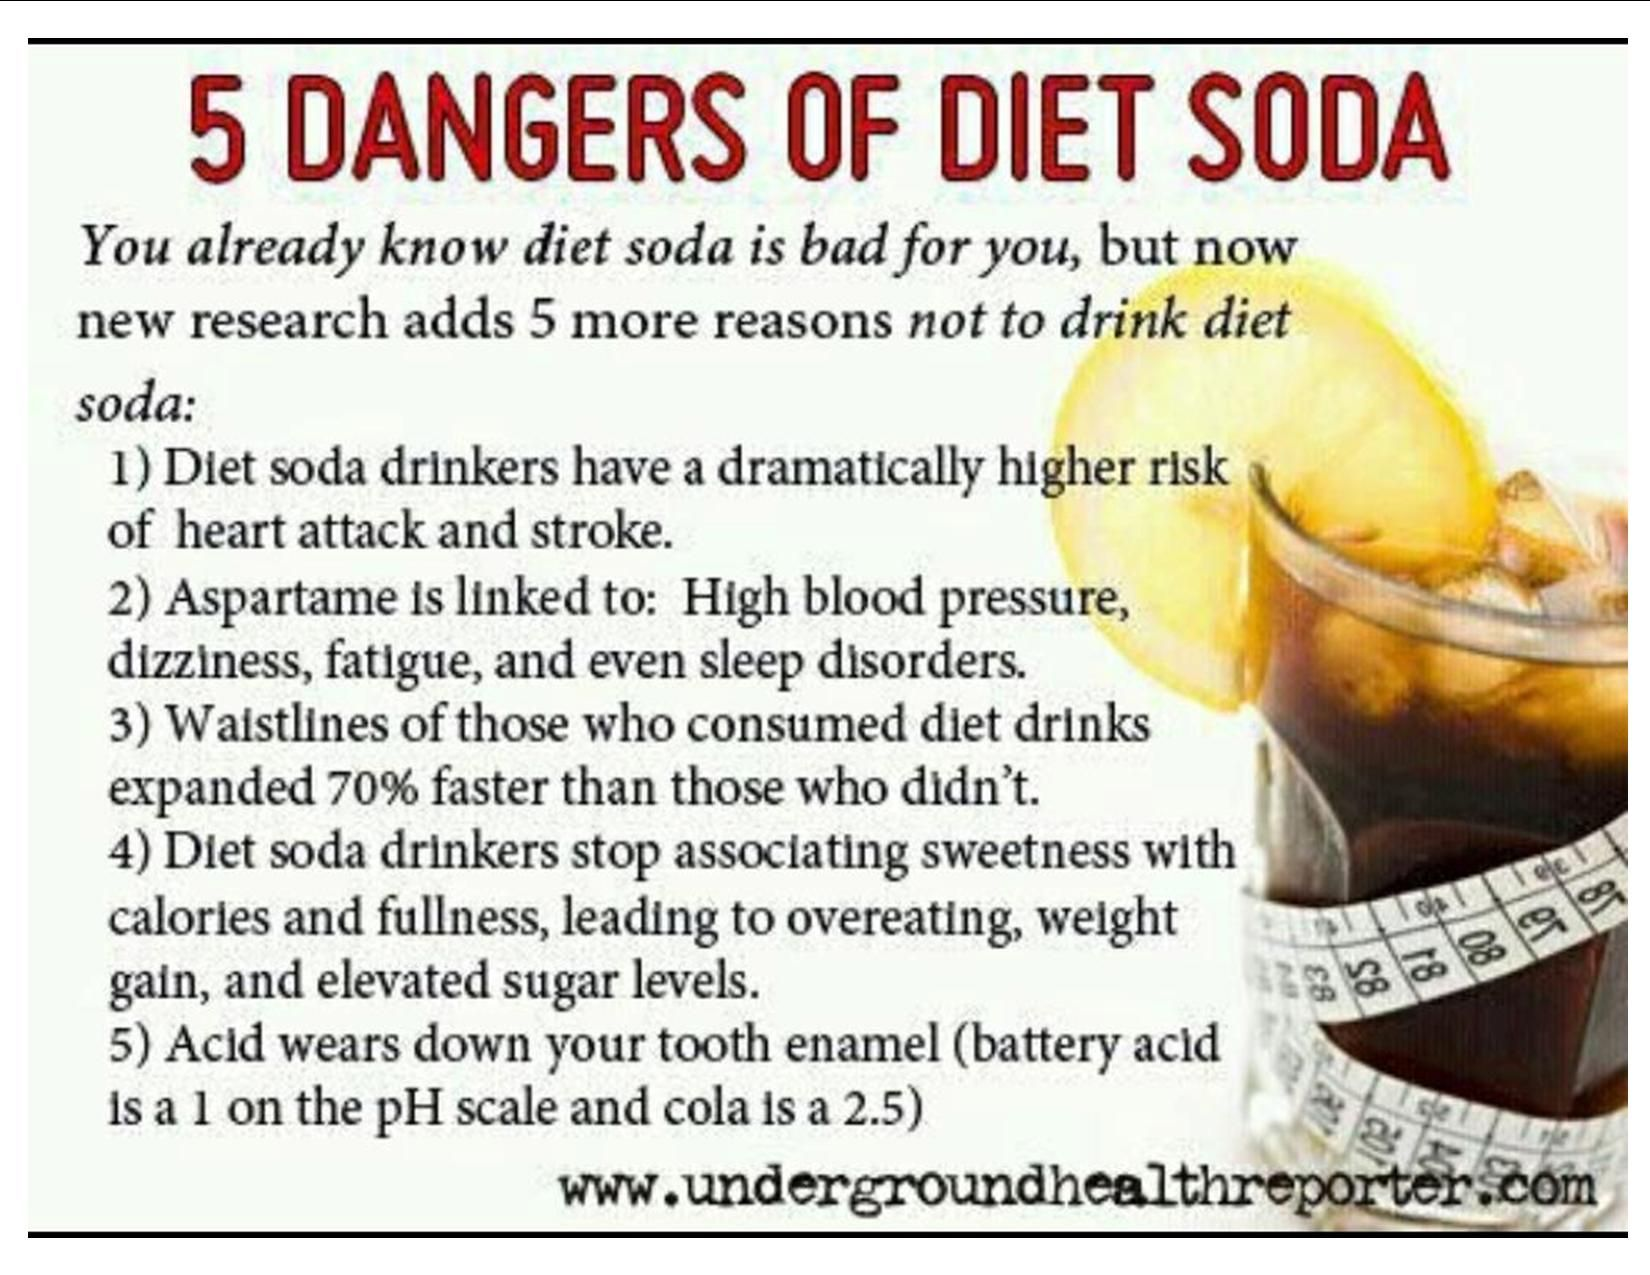 Is Aspartame Responsible for 'An Epidemic of Multiple Sclerosis and Lupus'?